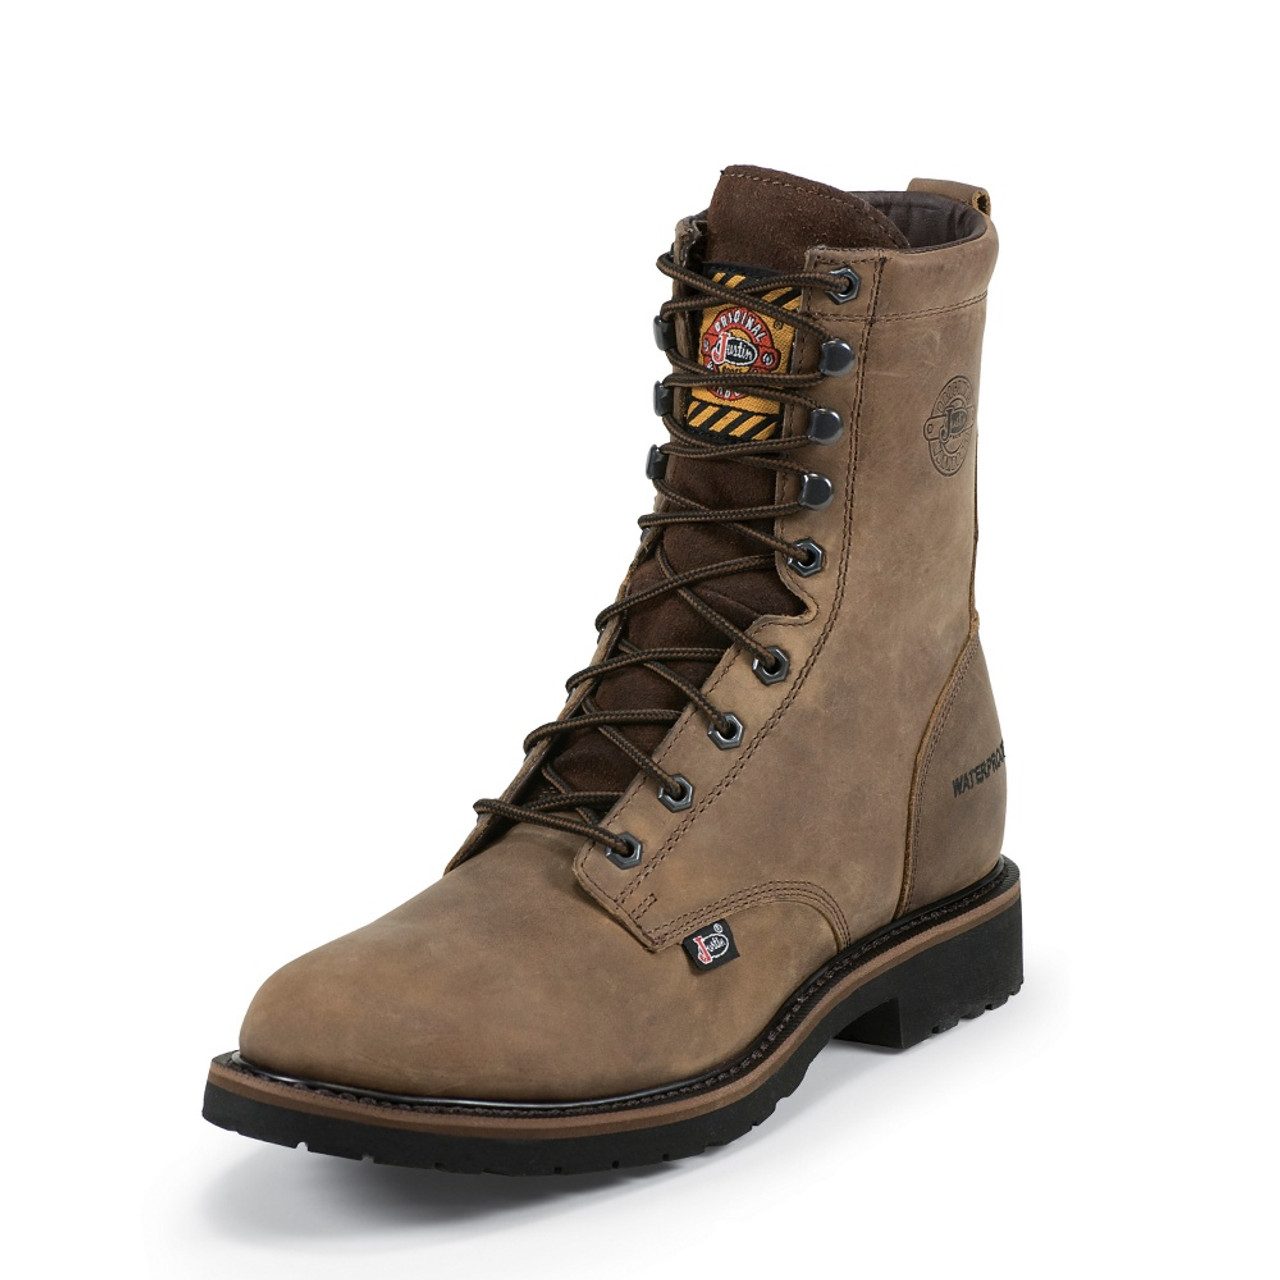 a65972021539d JUSTIN MEN'S WORK BOOTS WYOMING 8